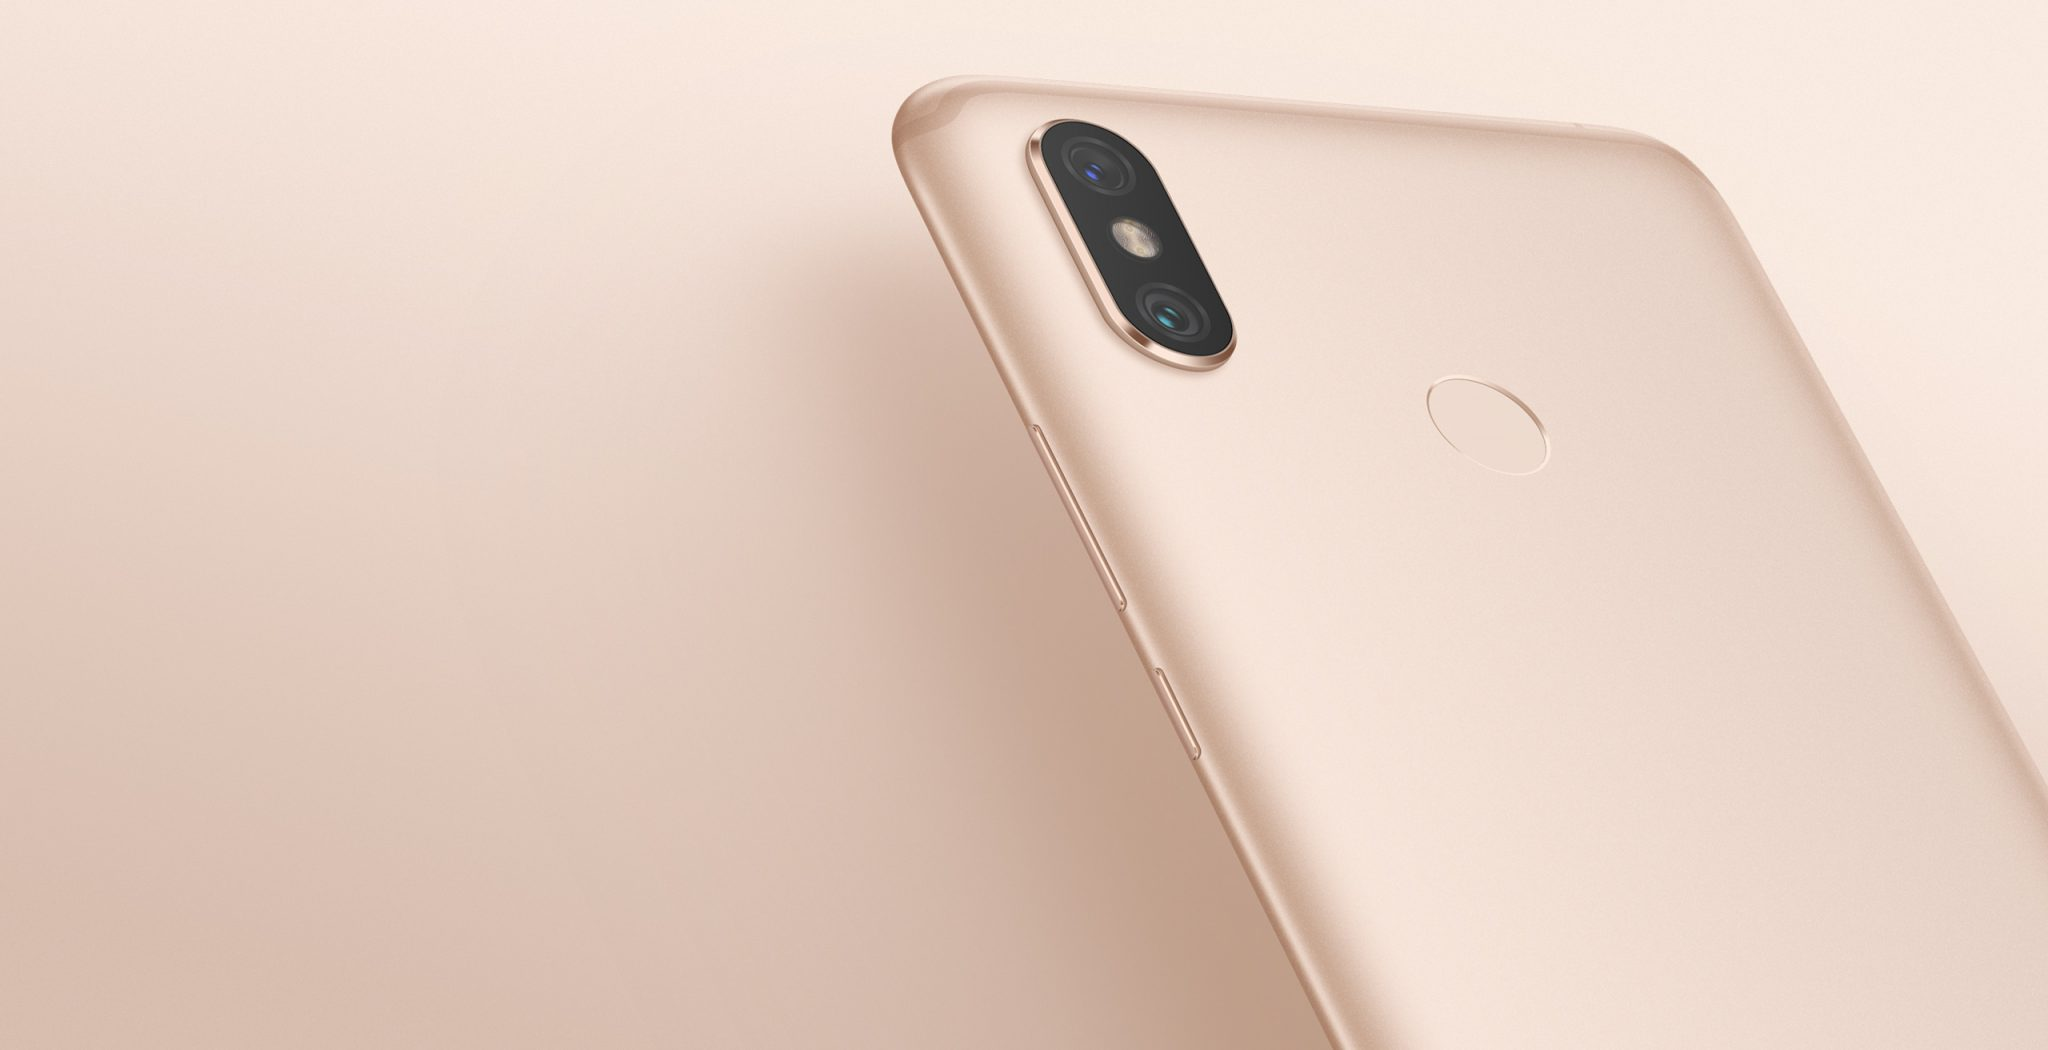 Xiaomi Mi Max 3 launched with Snapdragon 636 & 5,500mAh battery 7